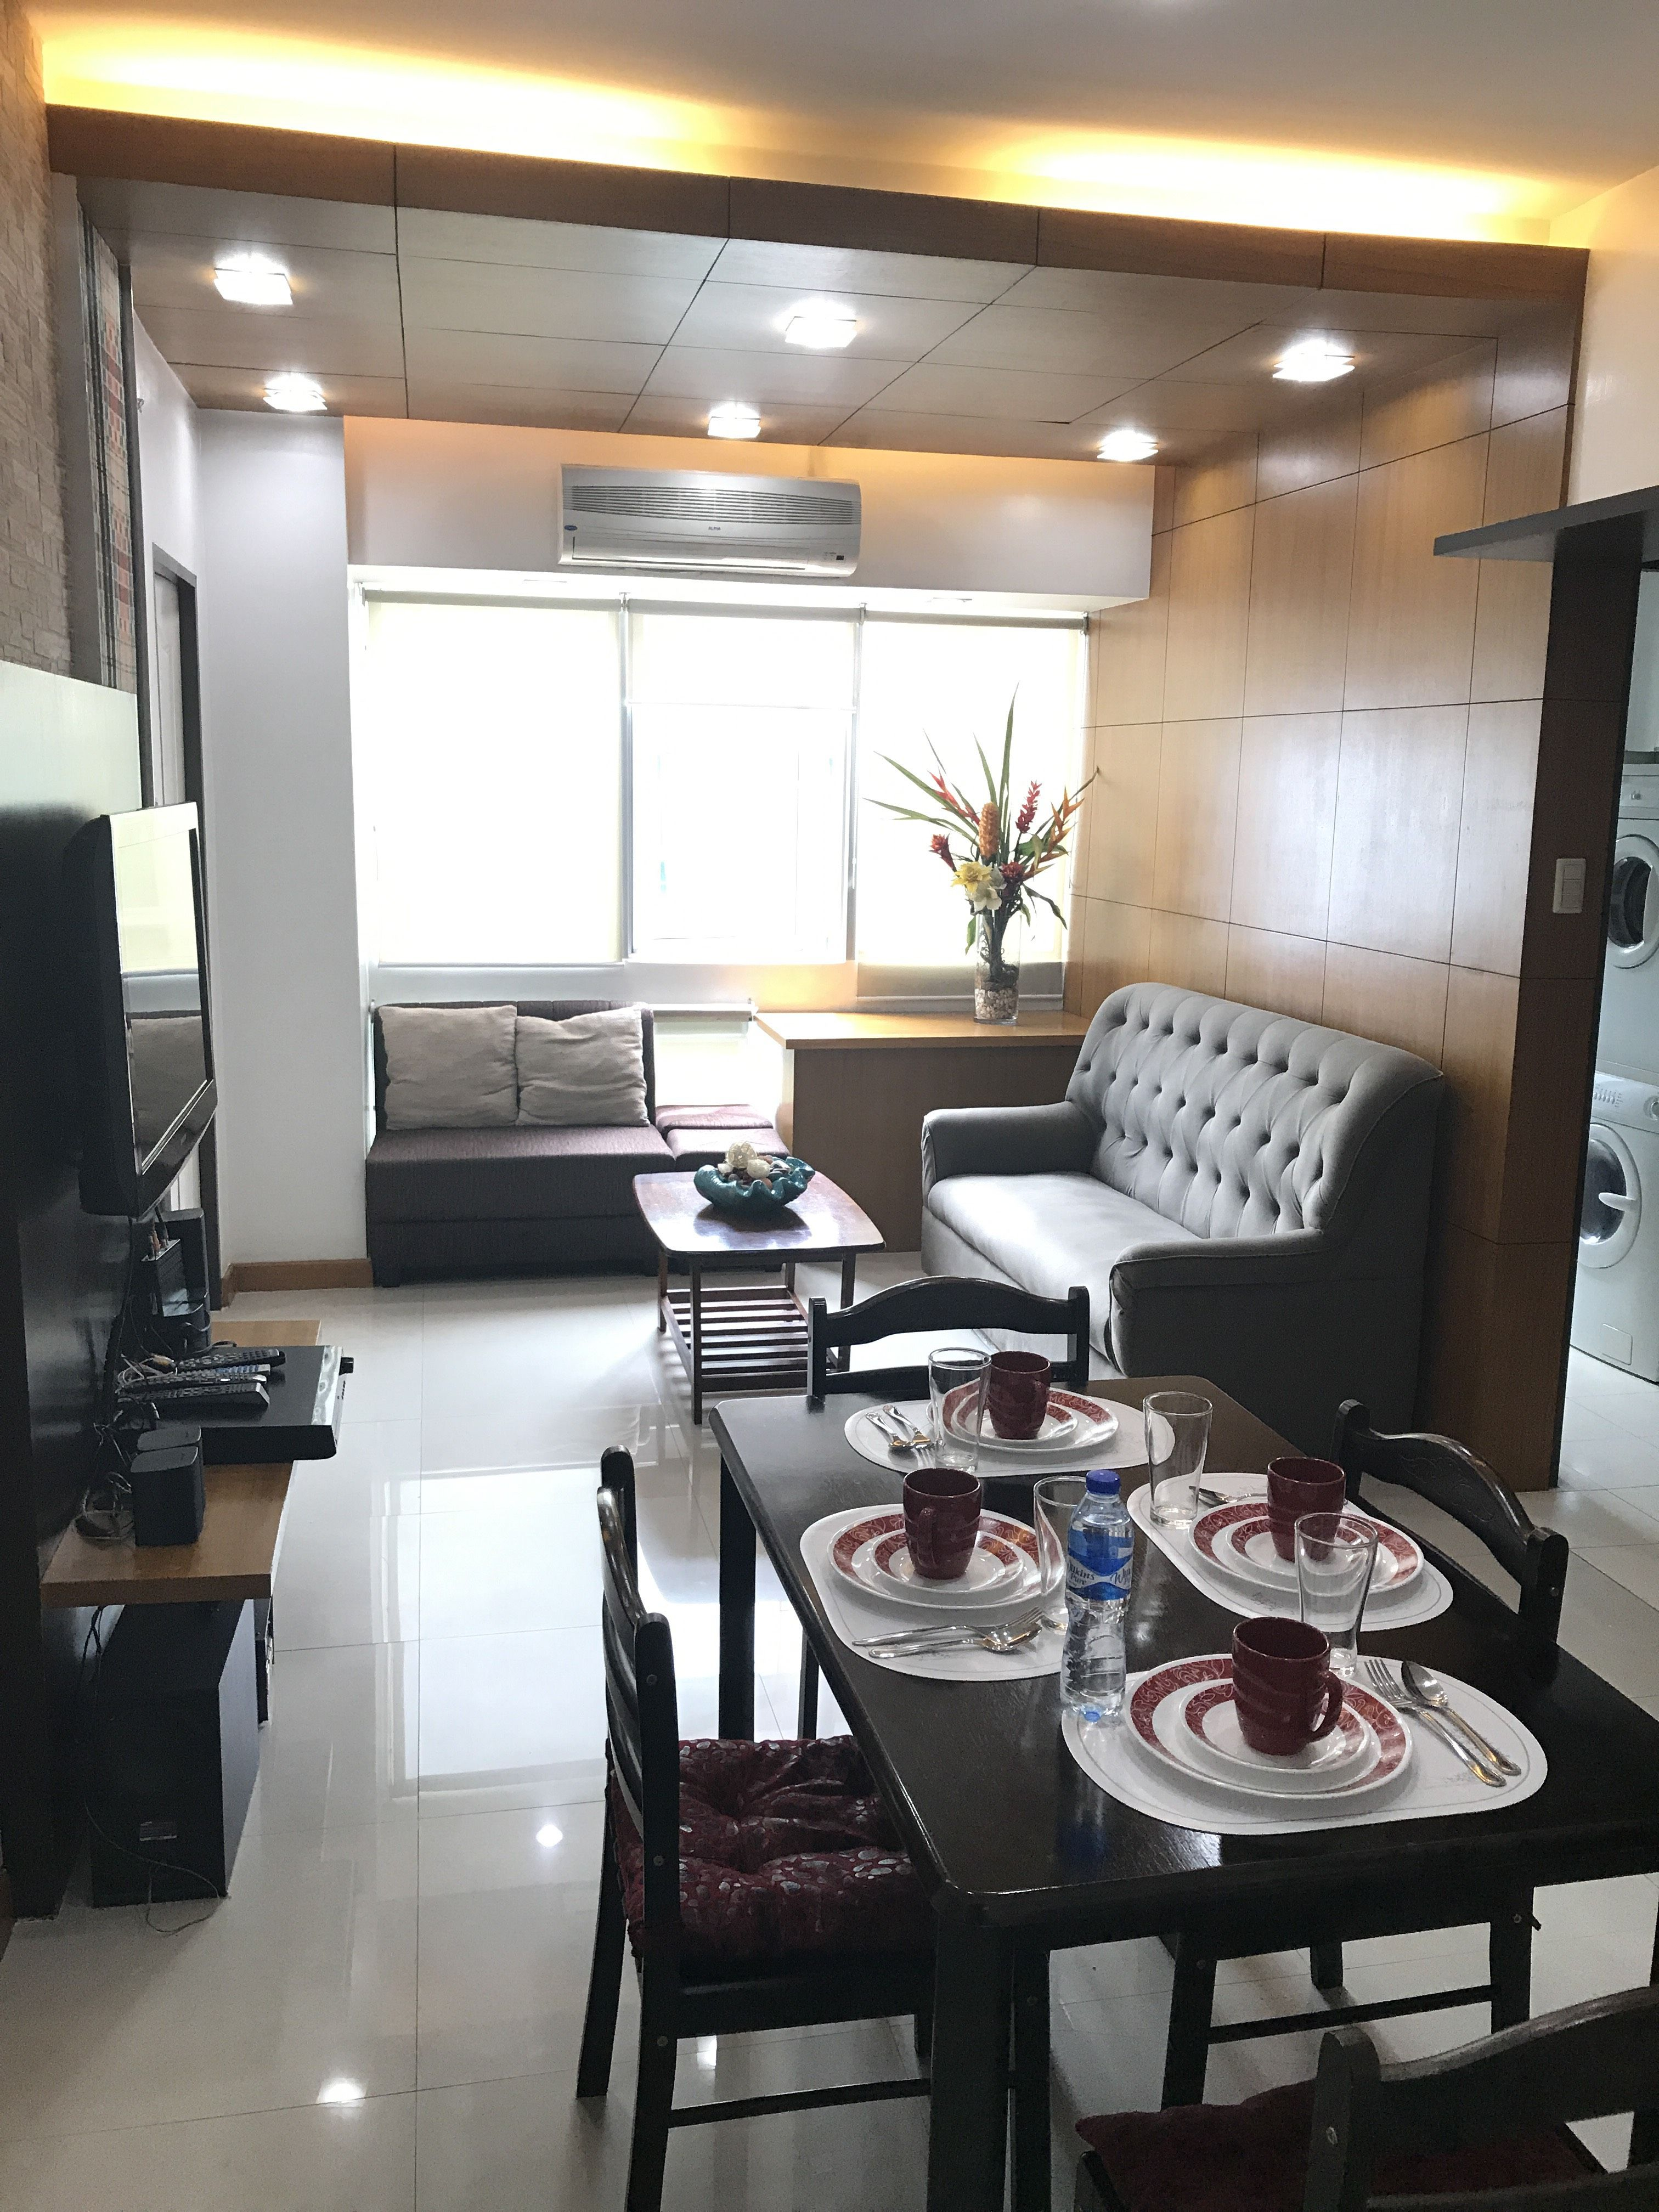 2 Bedroom Condo for Rent in BGC Taguig City, 77sqm, Grand